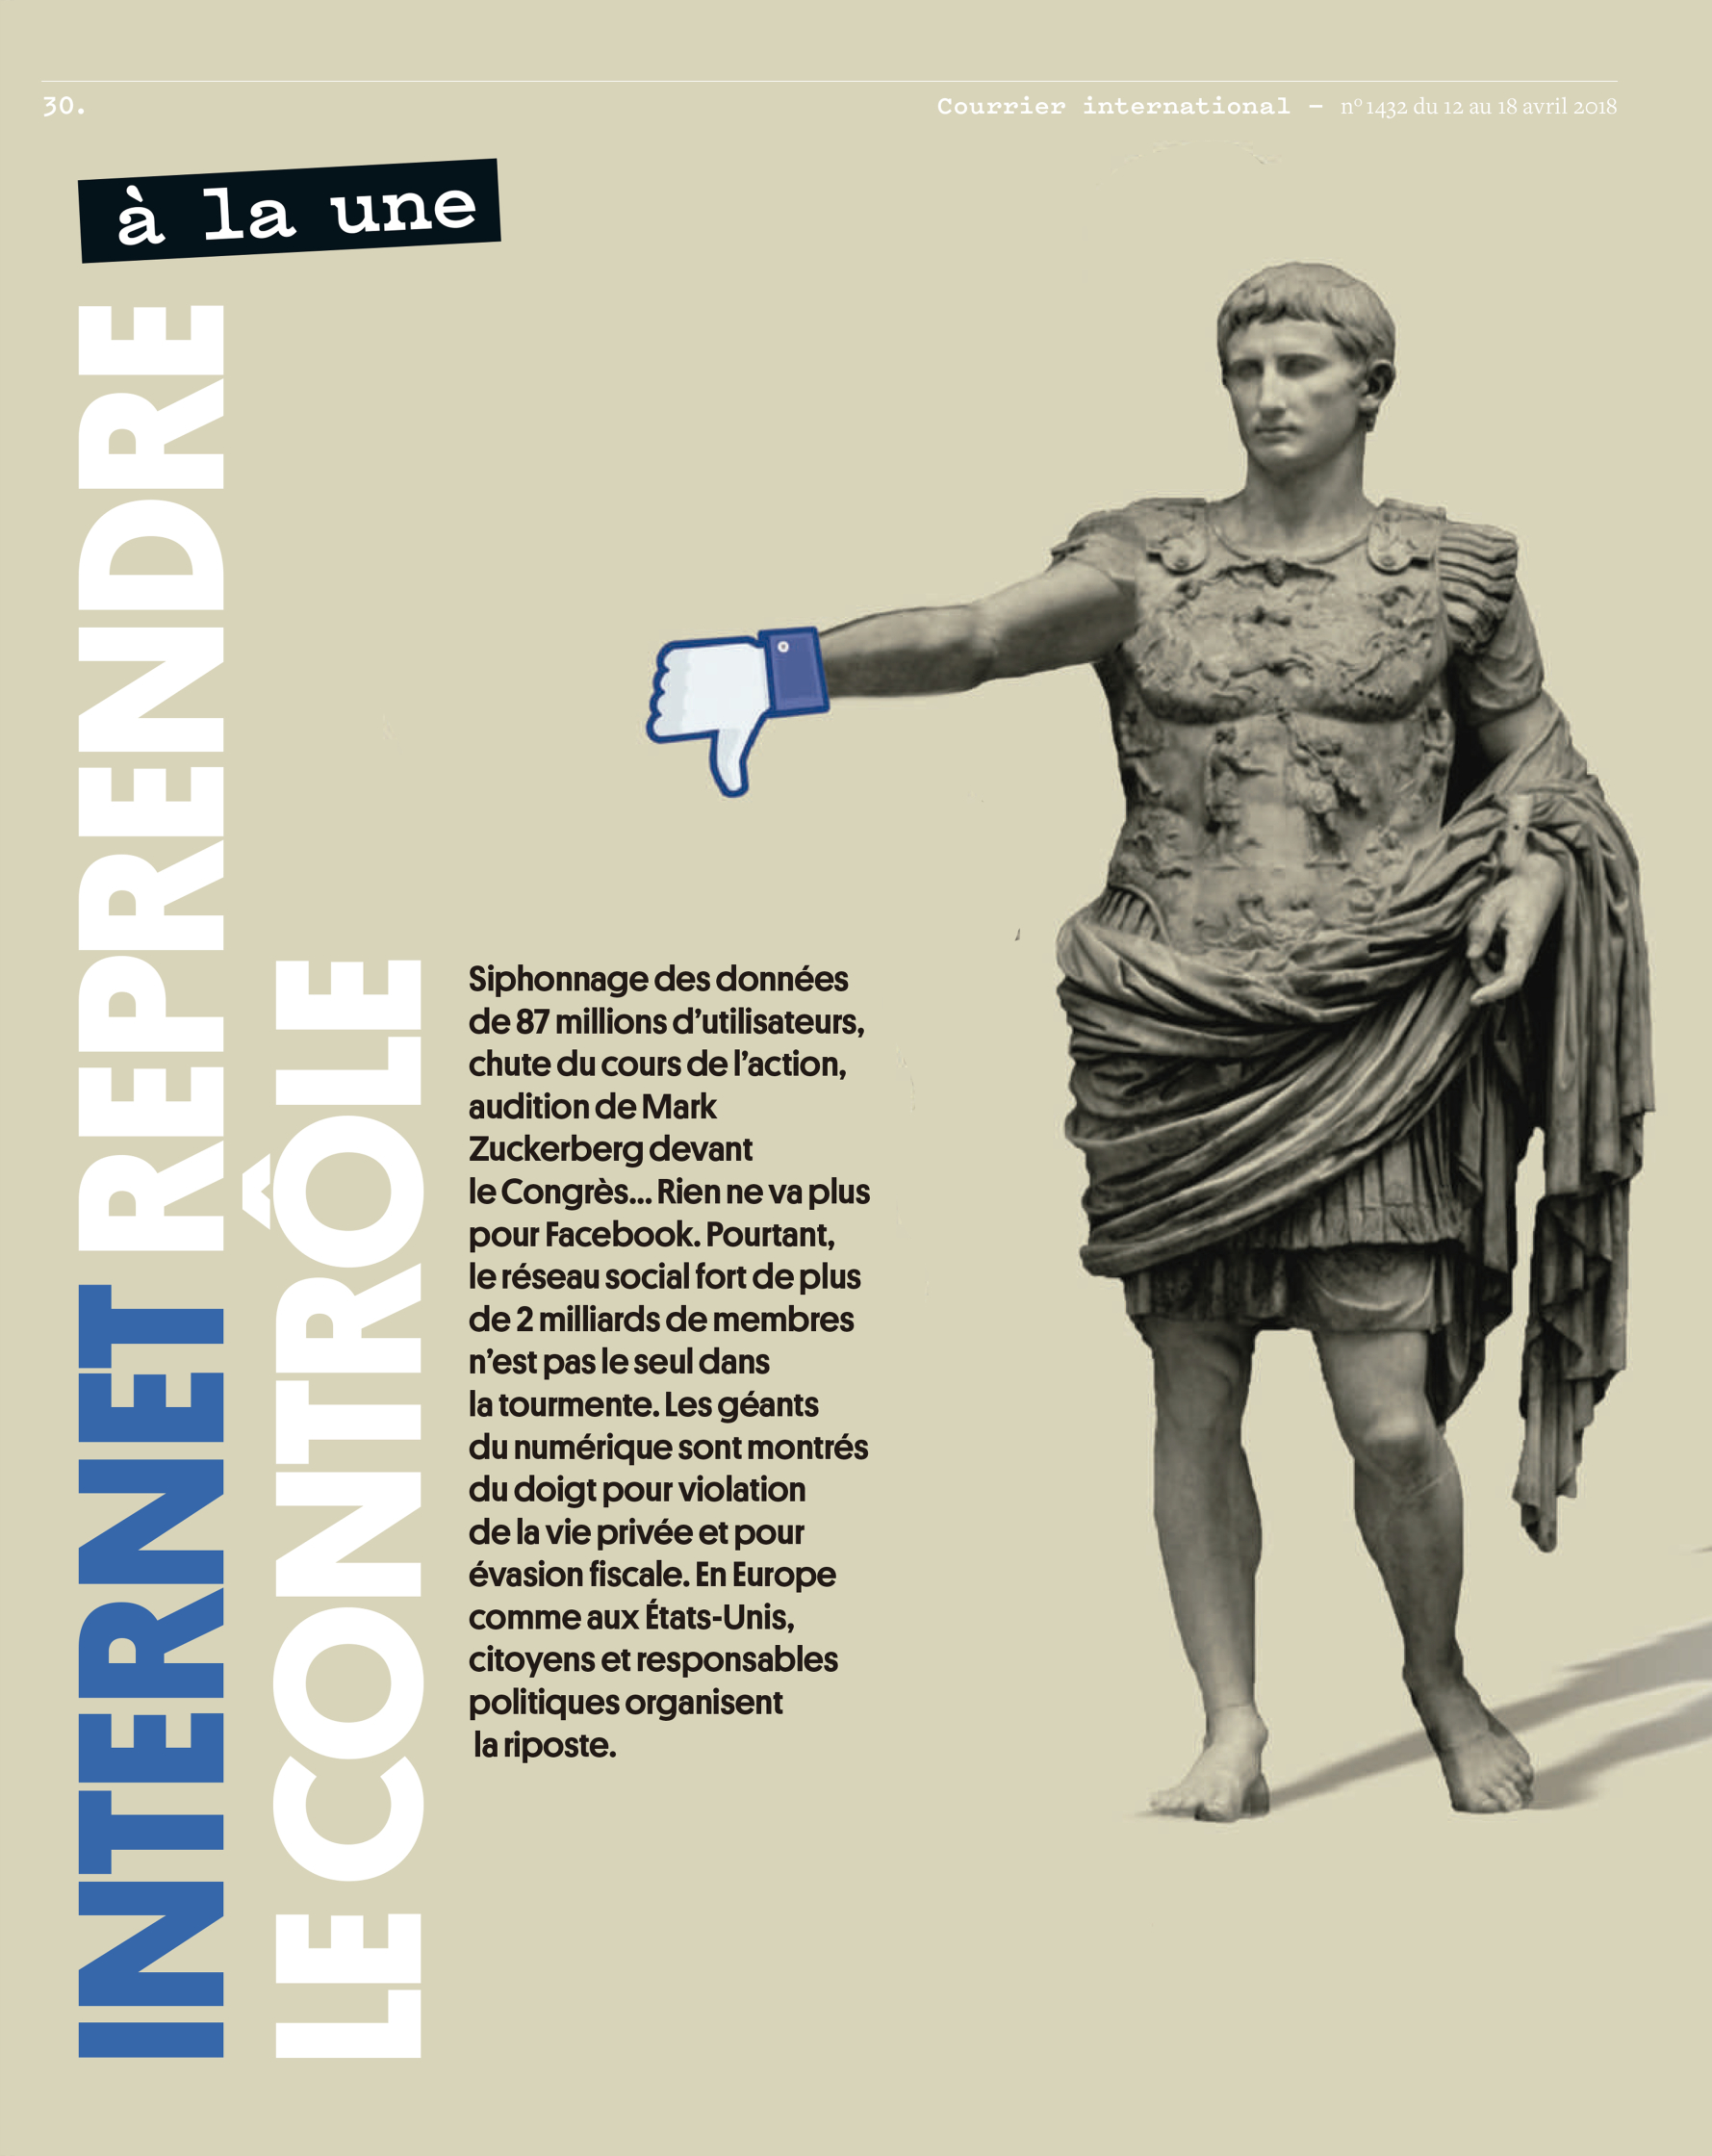 Internet takes back control (Le Courrier International).jpg